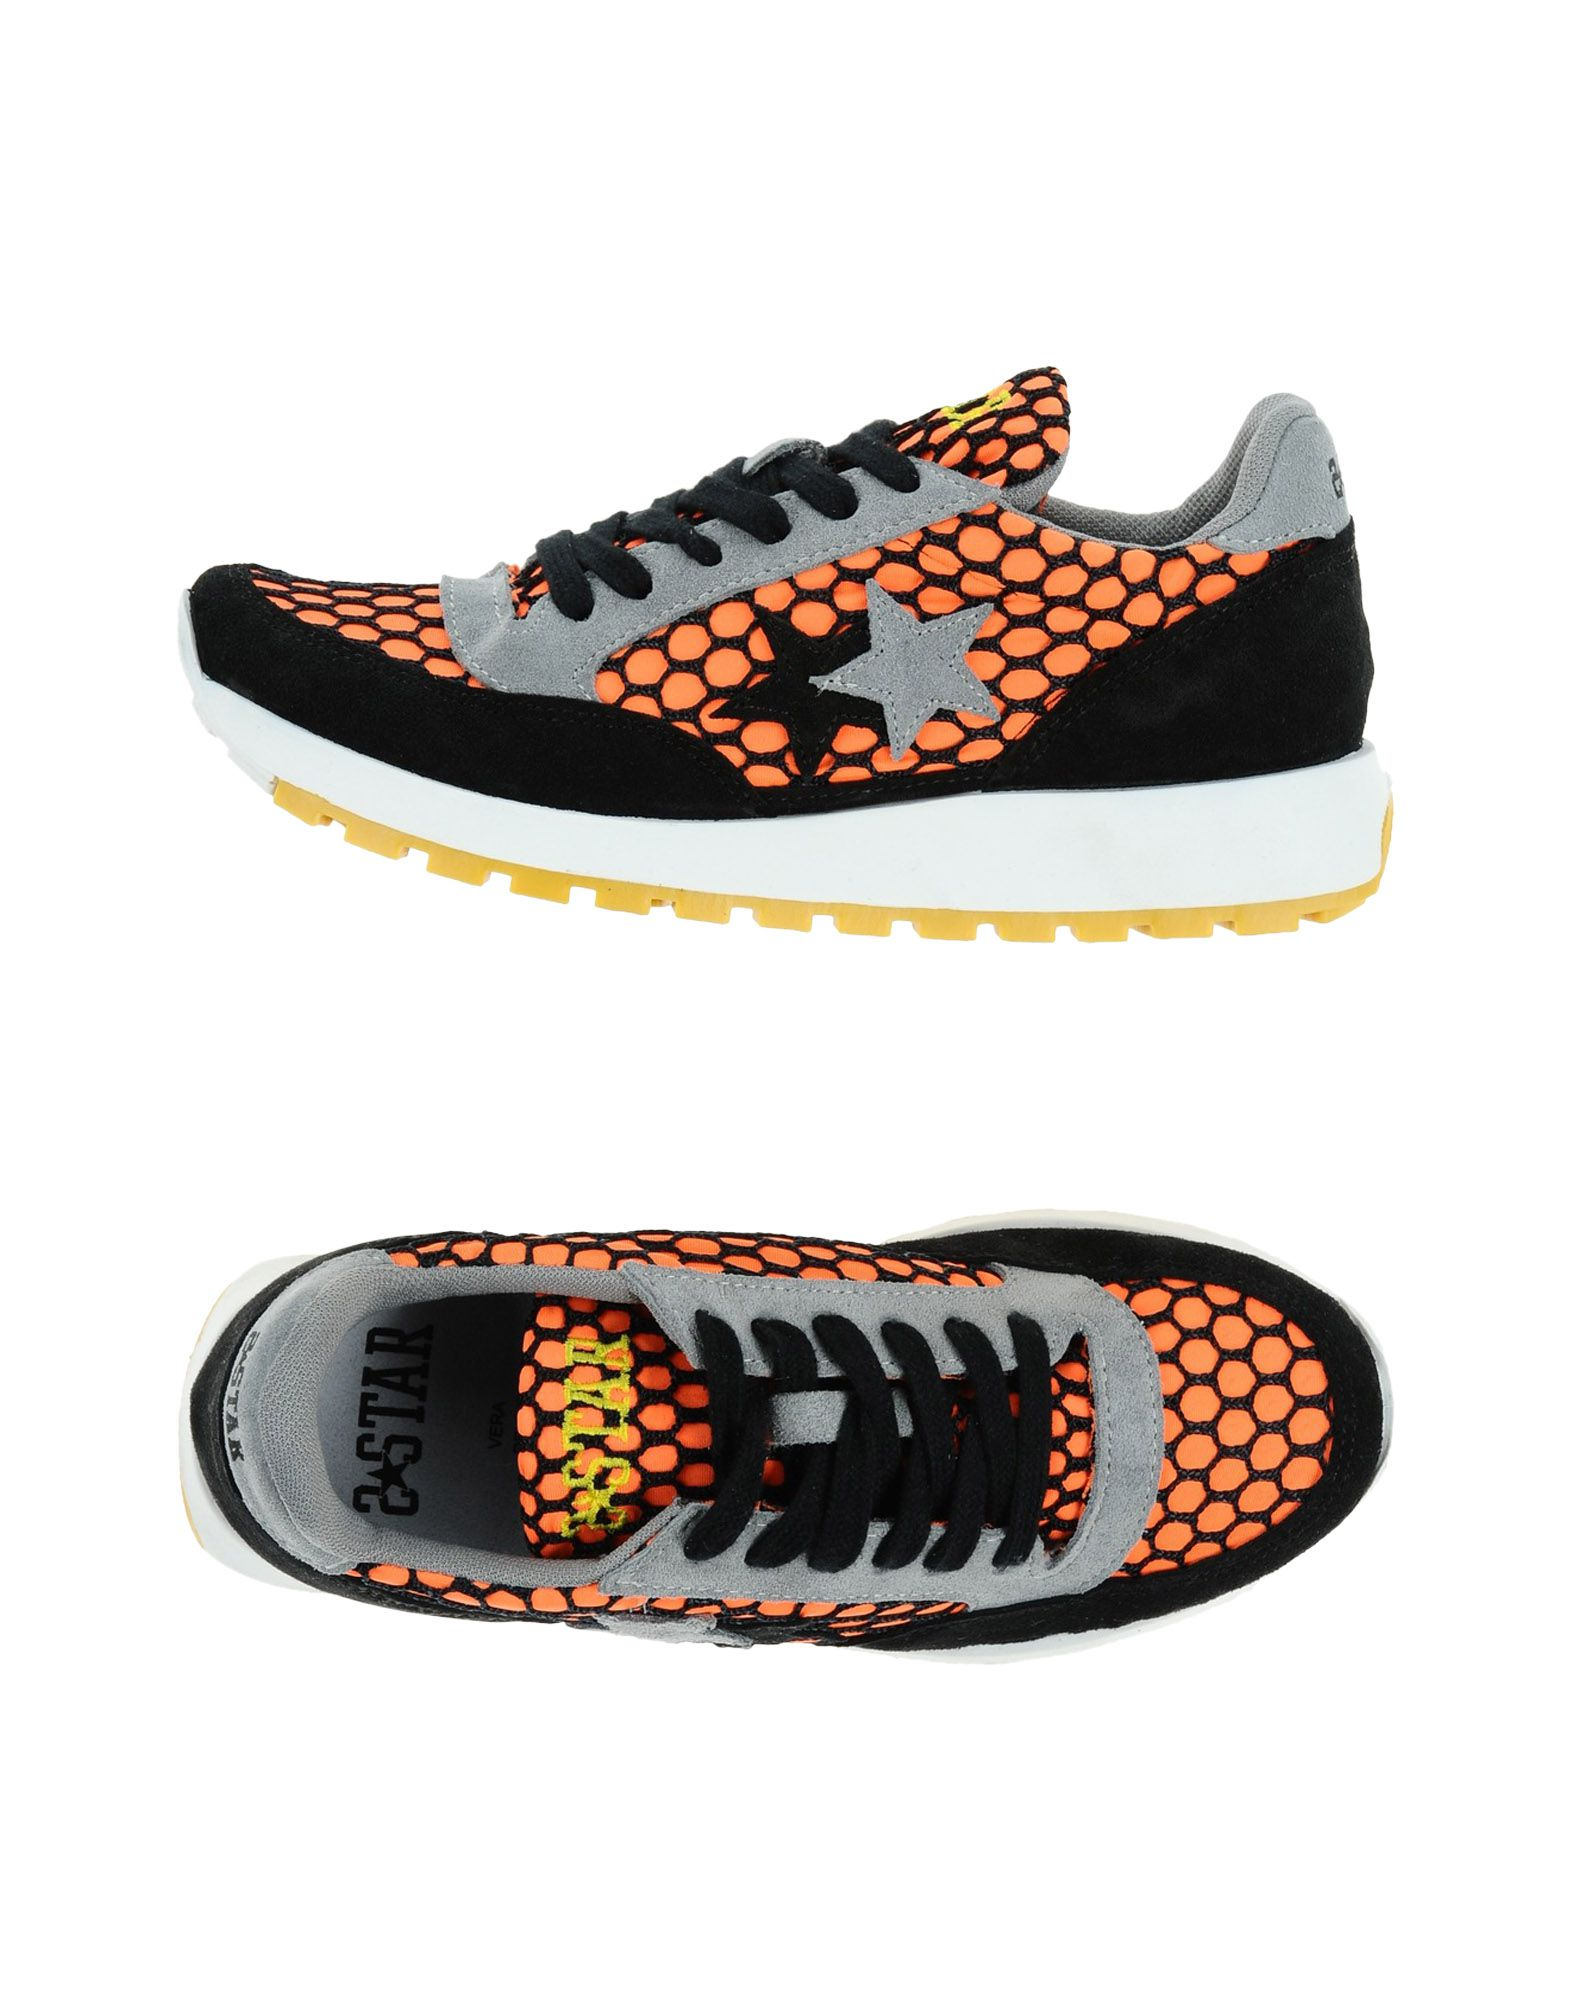 Moda Sneakers 2Star Donna - 11336860OR